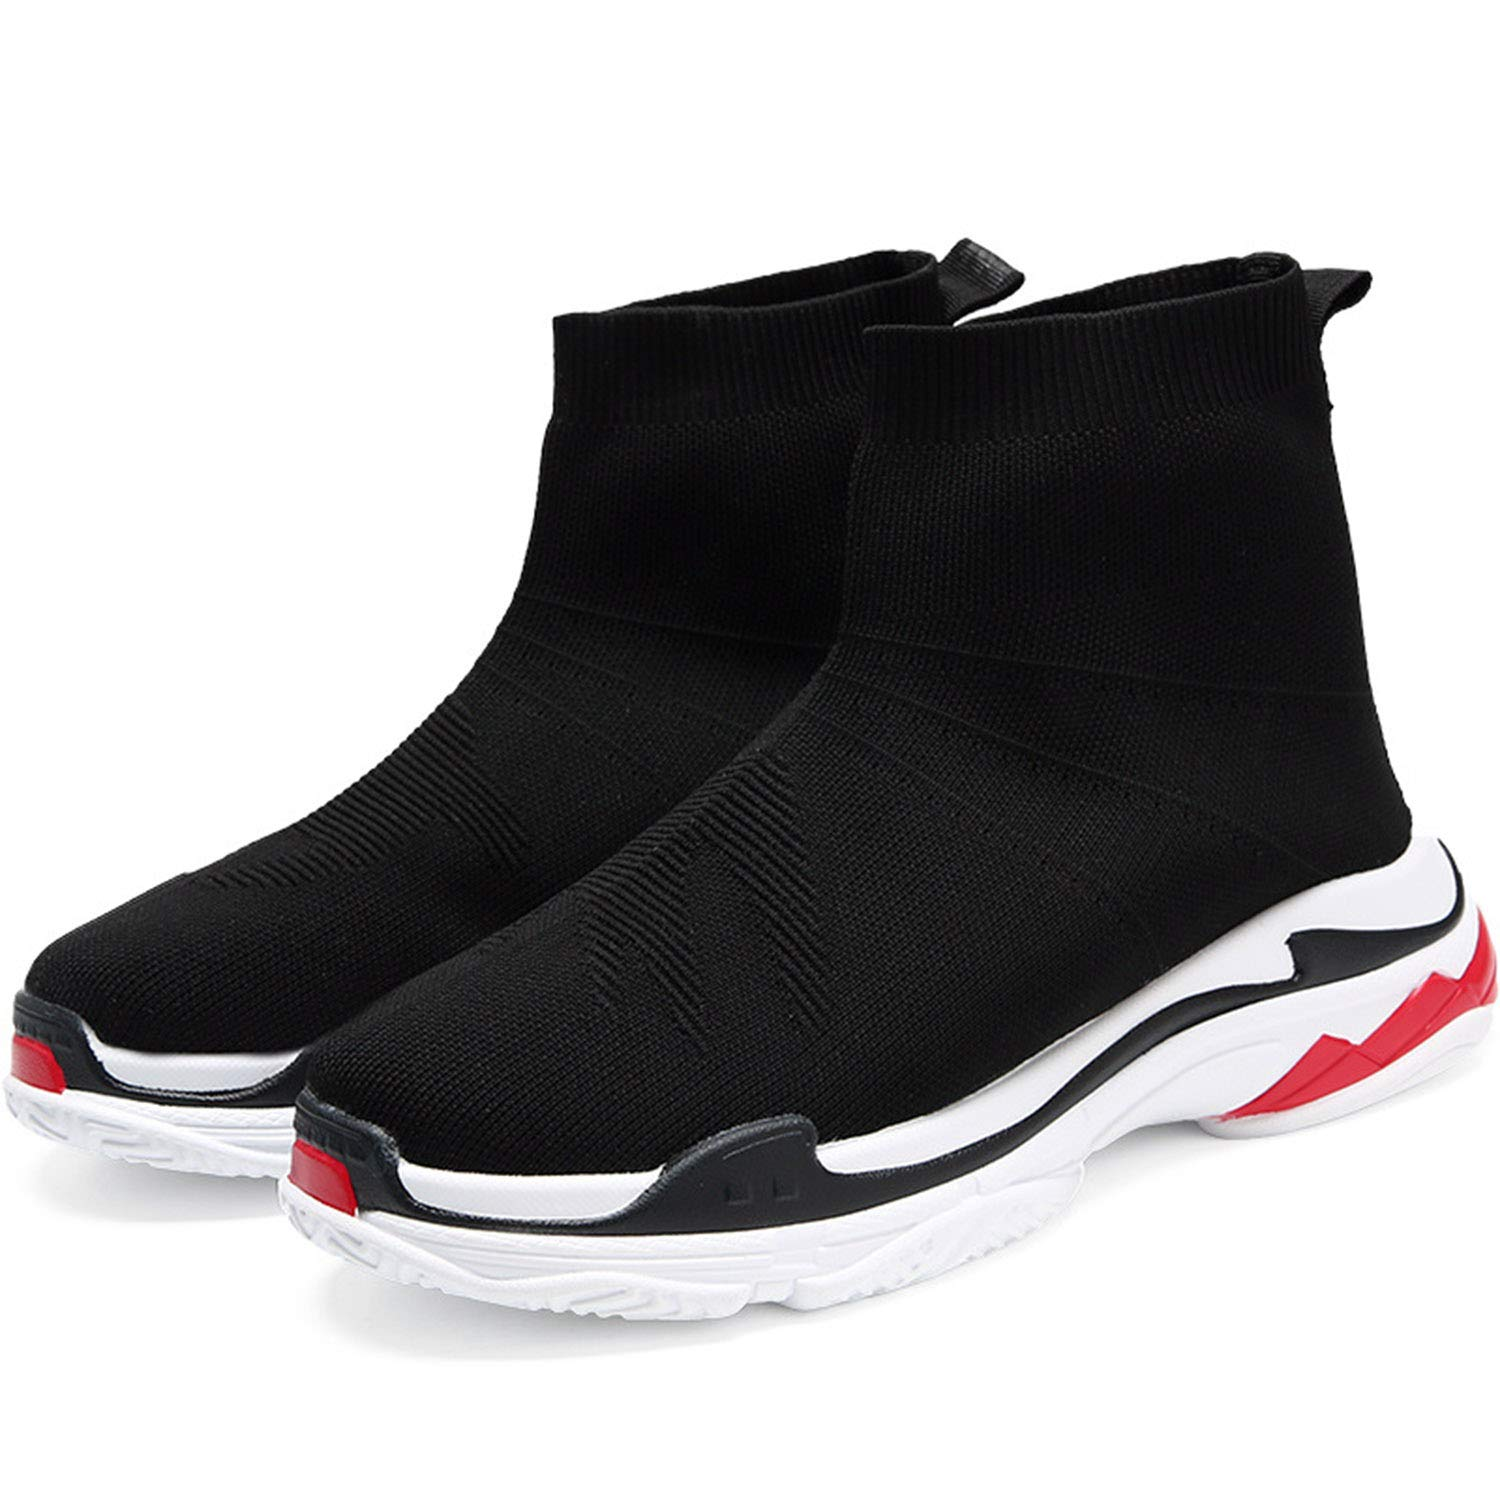 Black Spring and Summer Sports shoes Non-Slip shoes Men's shoes Deodorant Women's shoes Socks Sports shoes @ Y.T,Black,7